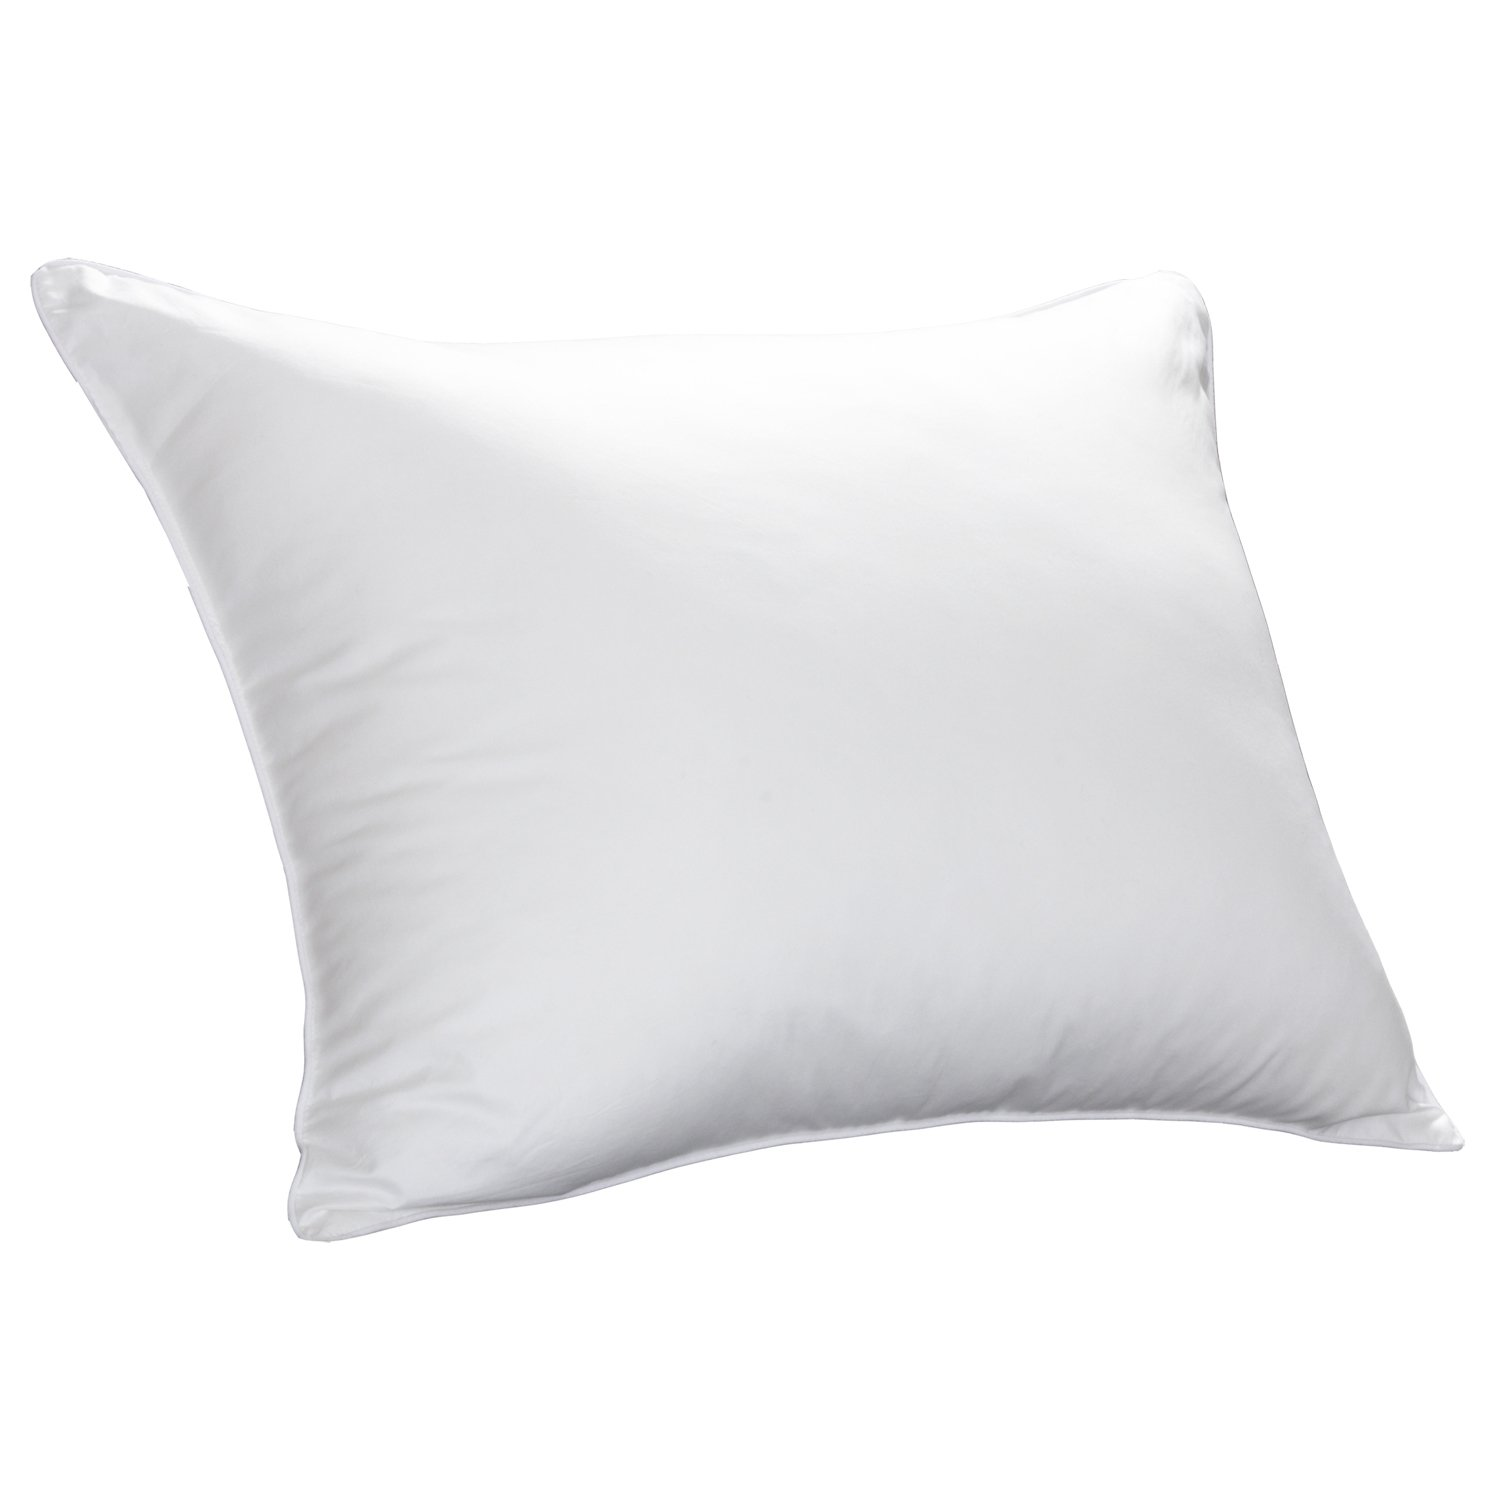 Shopping Guide The Best Feather Pillows On The Market